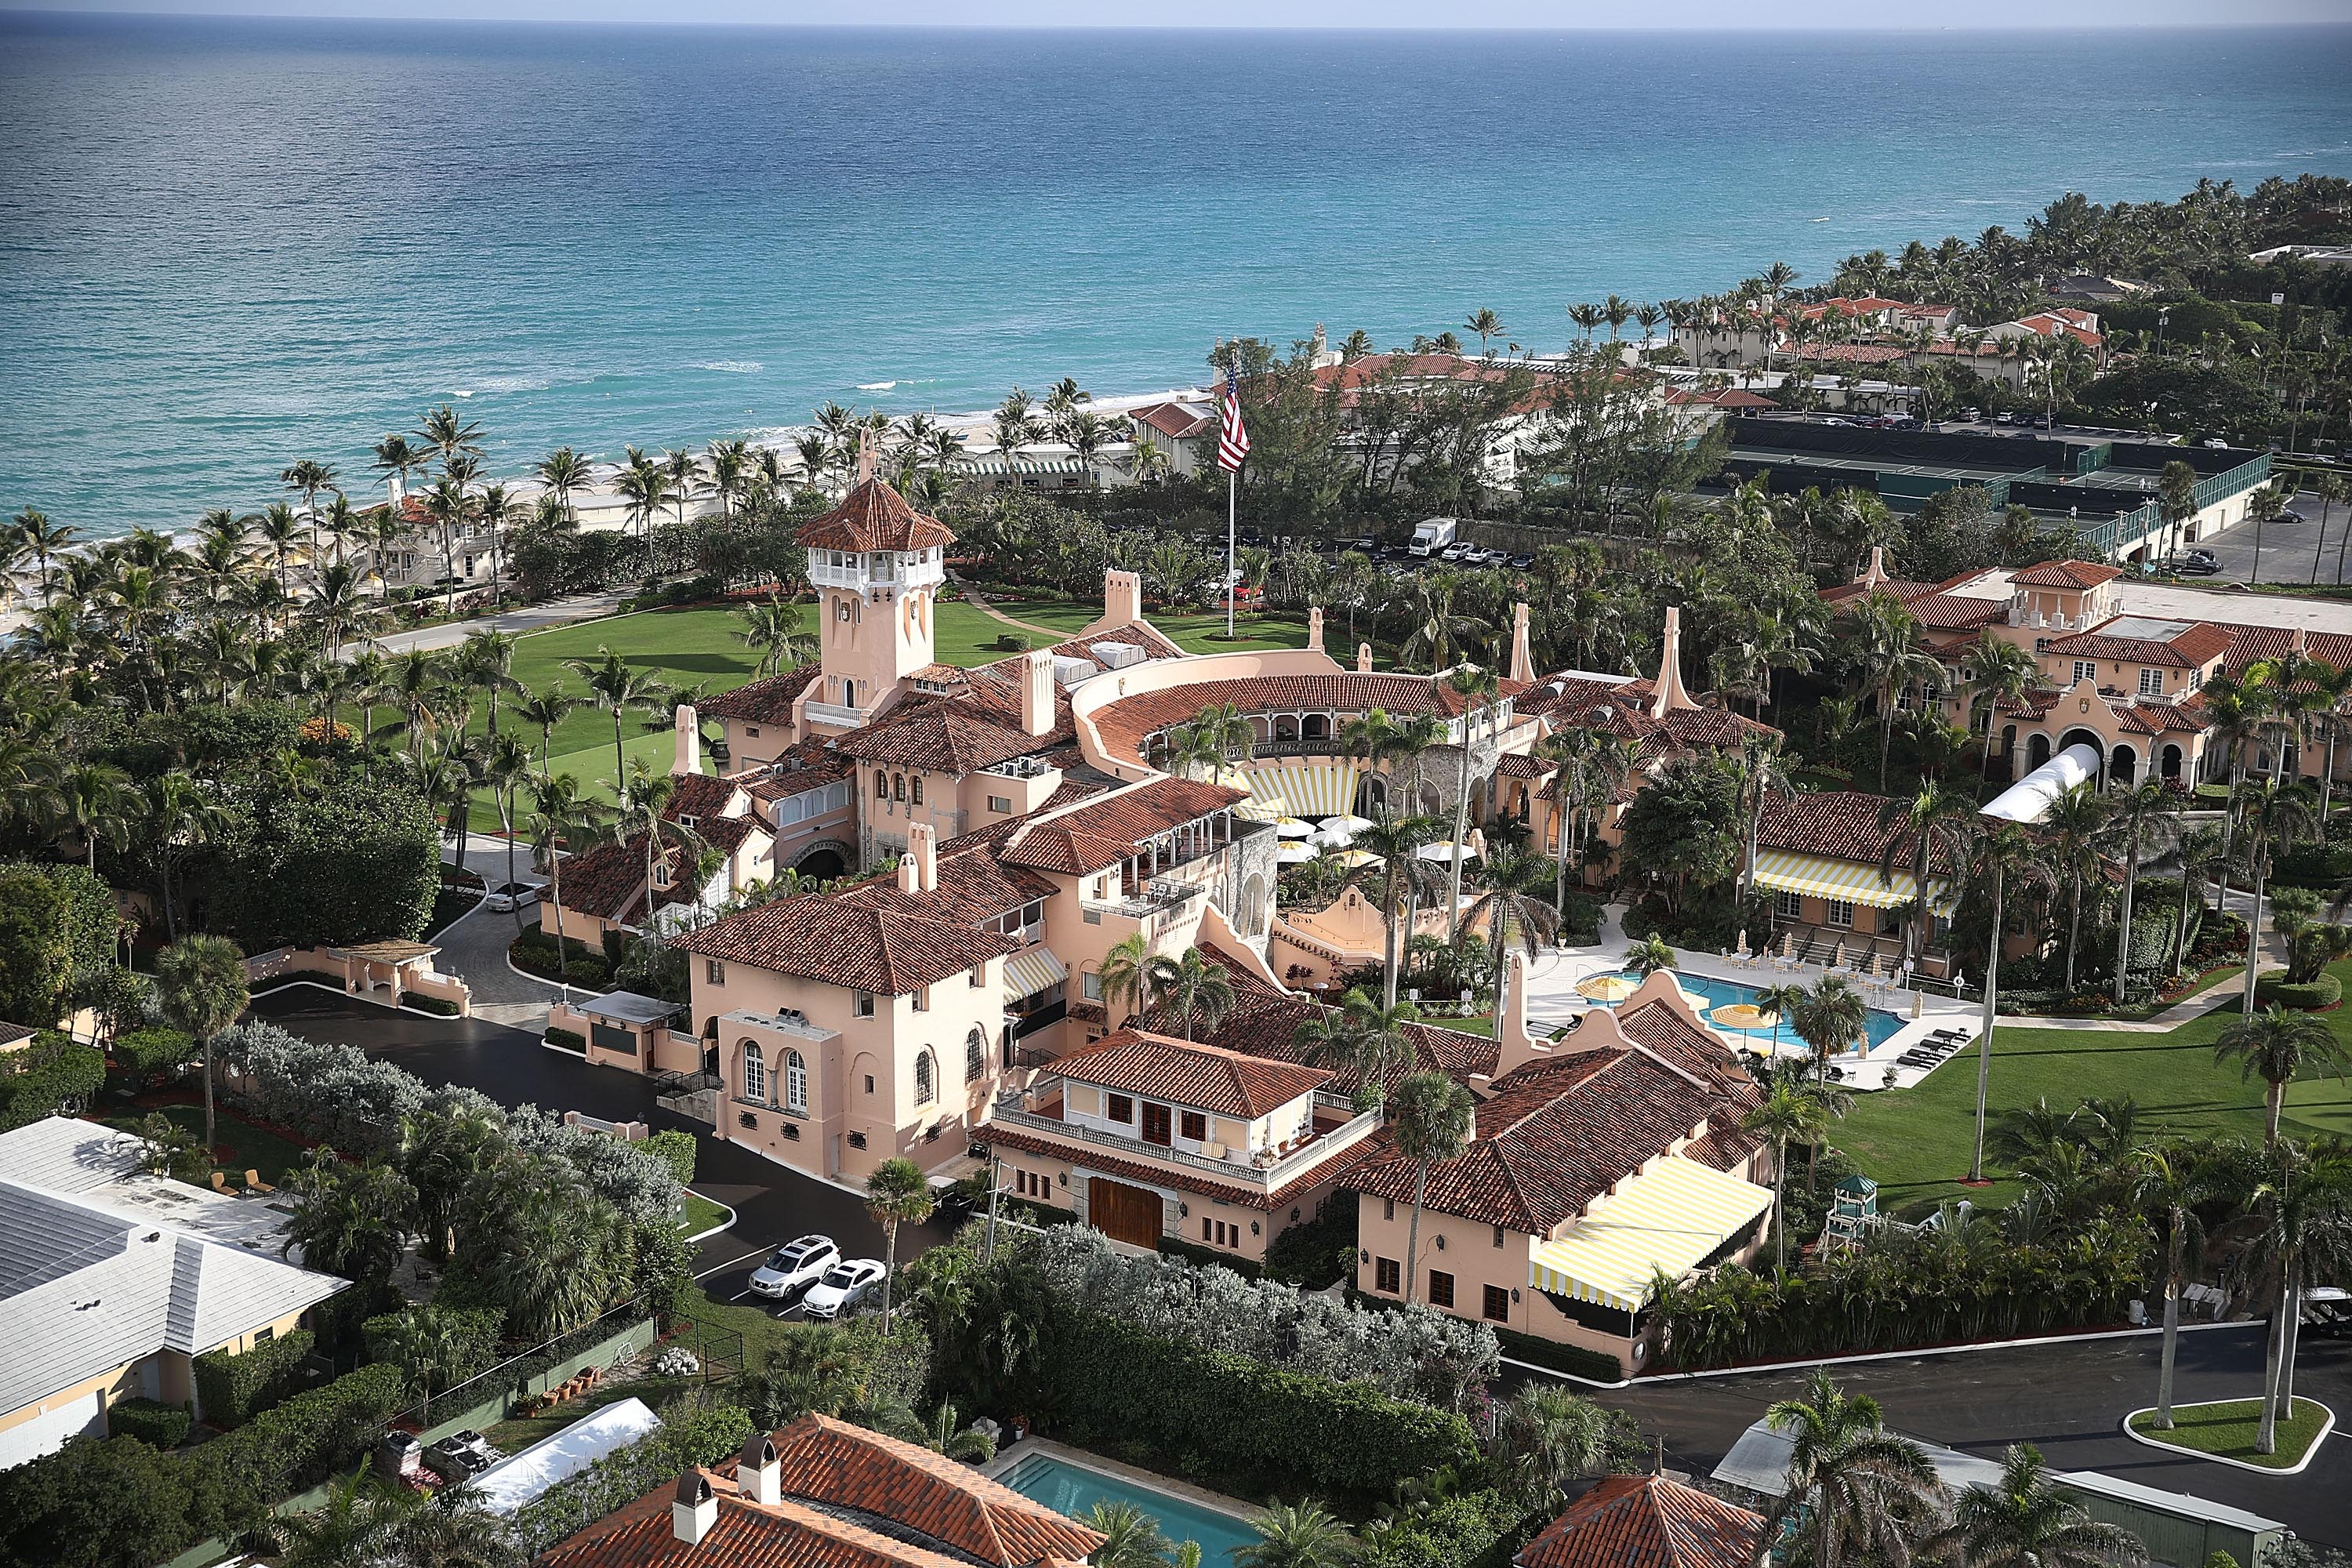 The Atlantic Ocean is seen adjacent to President Donald Trump's beach front Mar-a-Lago resort, also sometimes called his Winter White House.